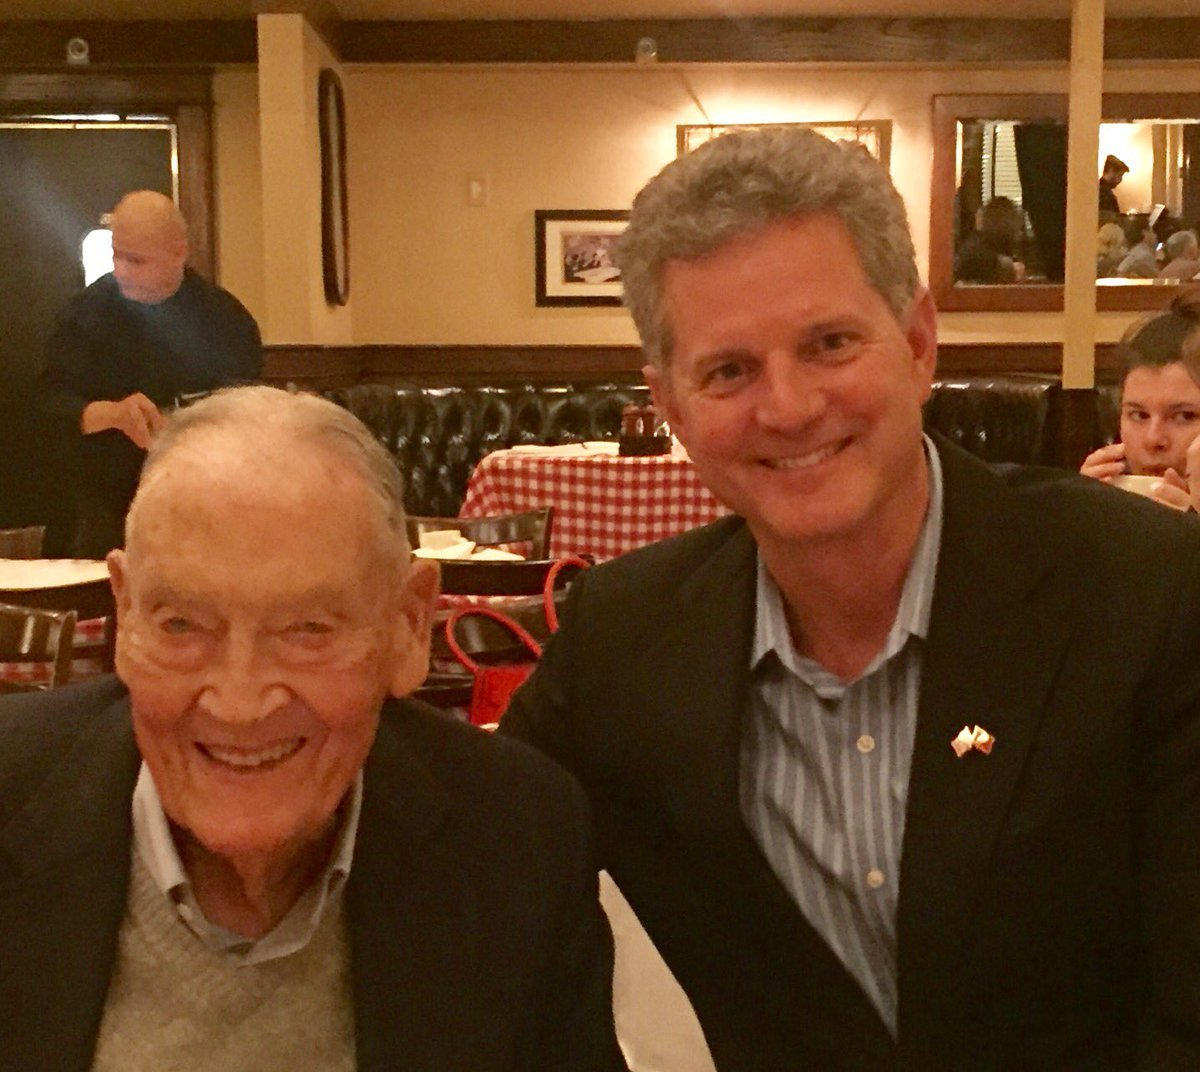 Most people choose the investment business to make money. Jack Bogle chose to make a difference. And he did...   RIP Jack Bogle <br>http://pic.twitter.com/u3NV4UfNBf